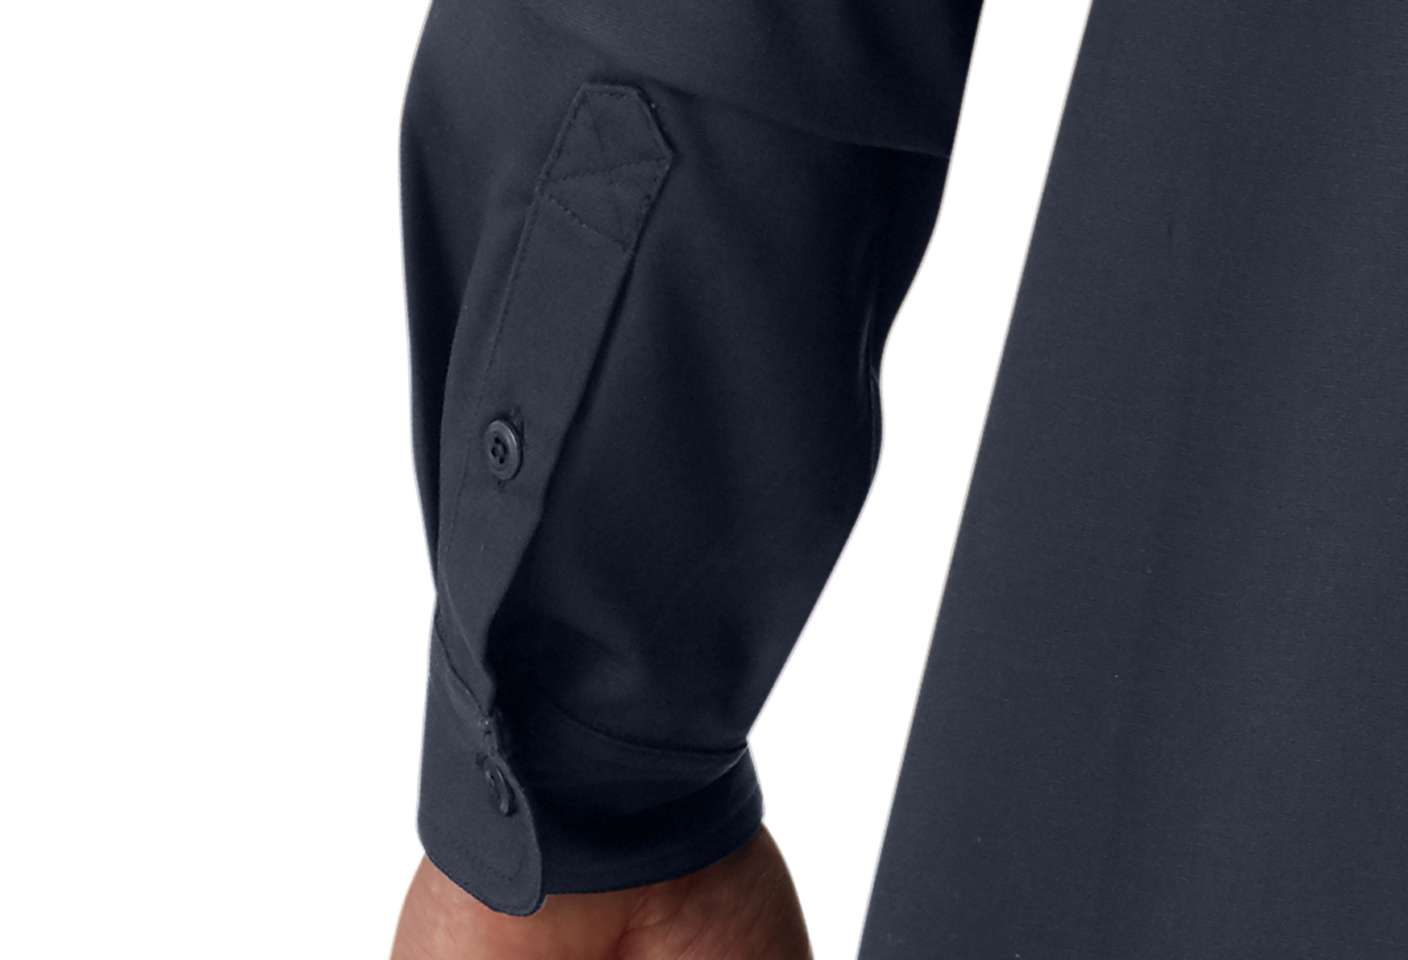 Two-button adjustable cuffs for the perfect fit